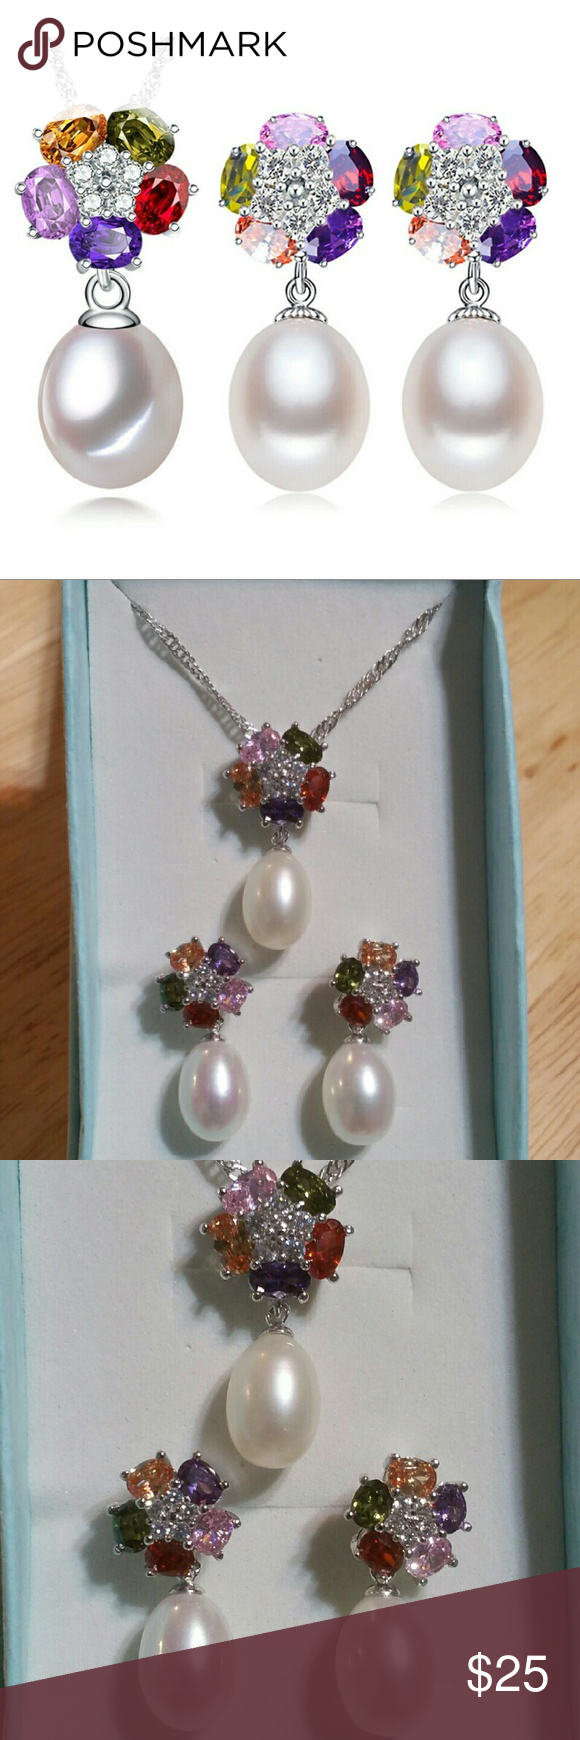 🌷NEW! Fashion Jewelry Set 925 Sterling Silver🌷 🌻New without Tags  Fashion Jewelry Sets Natural Freshwater Pearls 925 Sterling Silver Flower Earrings and Necklace 🍁Pearl Size : Approx.  8-9mm 🍁Pearl Type: Freshwater Pearls  🍁Chain Size: Approx. 17-18 inches  ✔All Reasonable Offers Accepted  ✔Bundle Discounts!💲💲💲 Thank you for stopping by!  Make an offer!👍 Jewelry